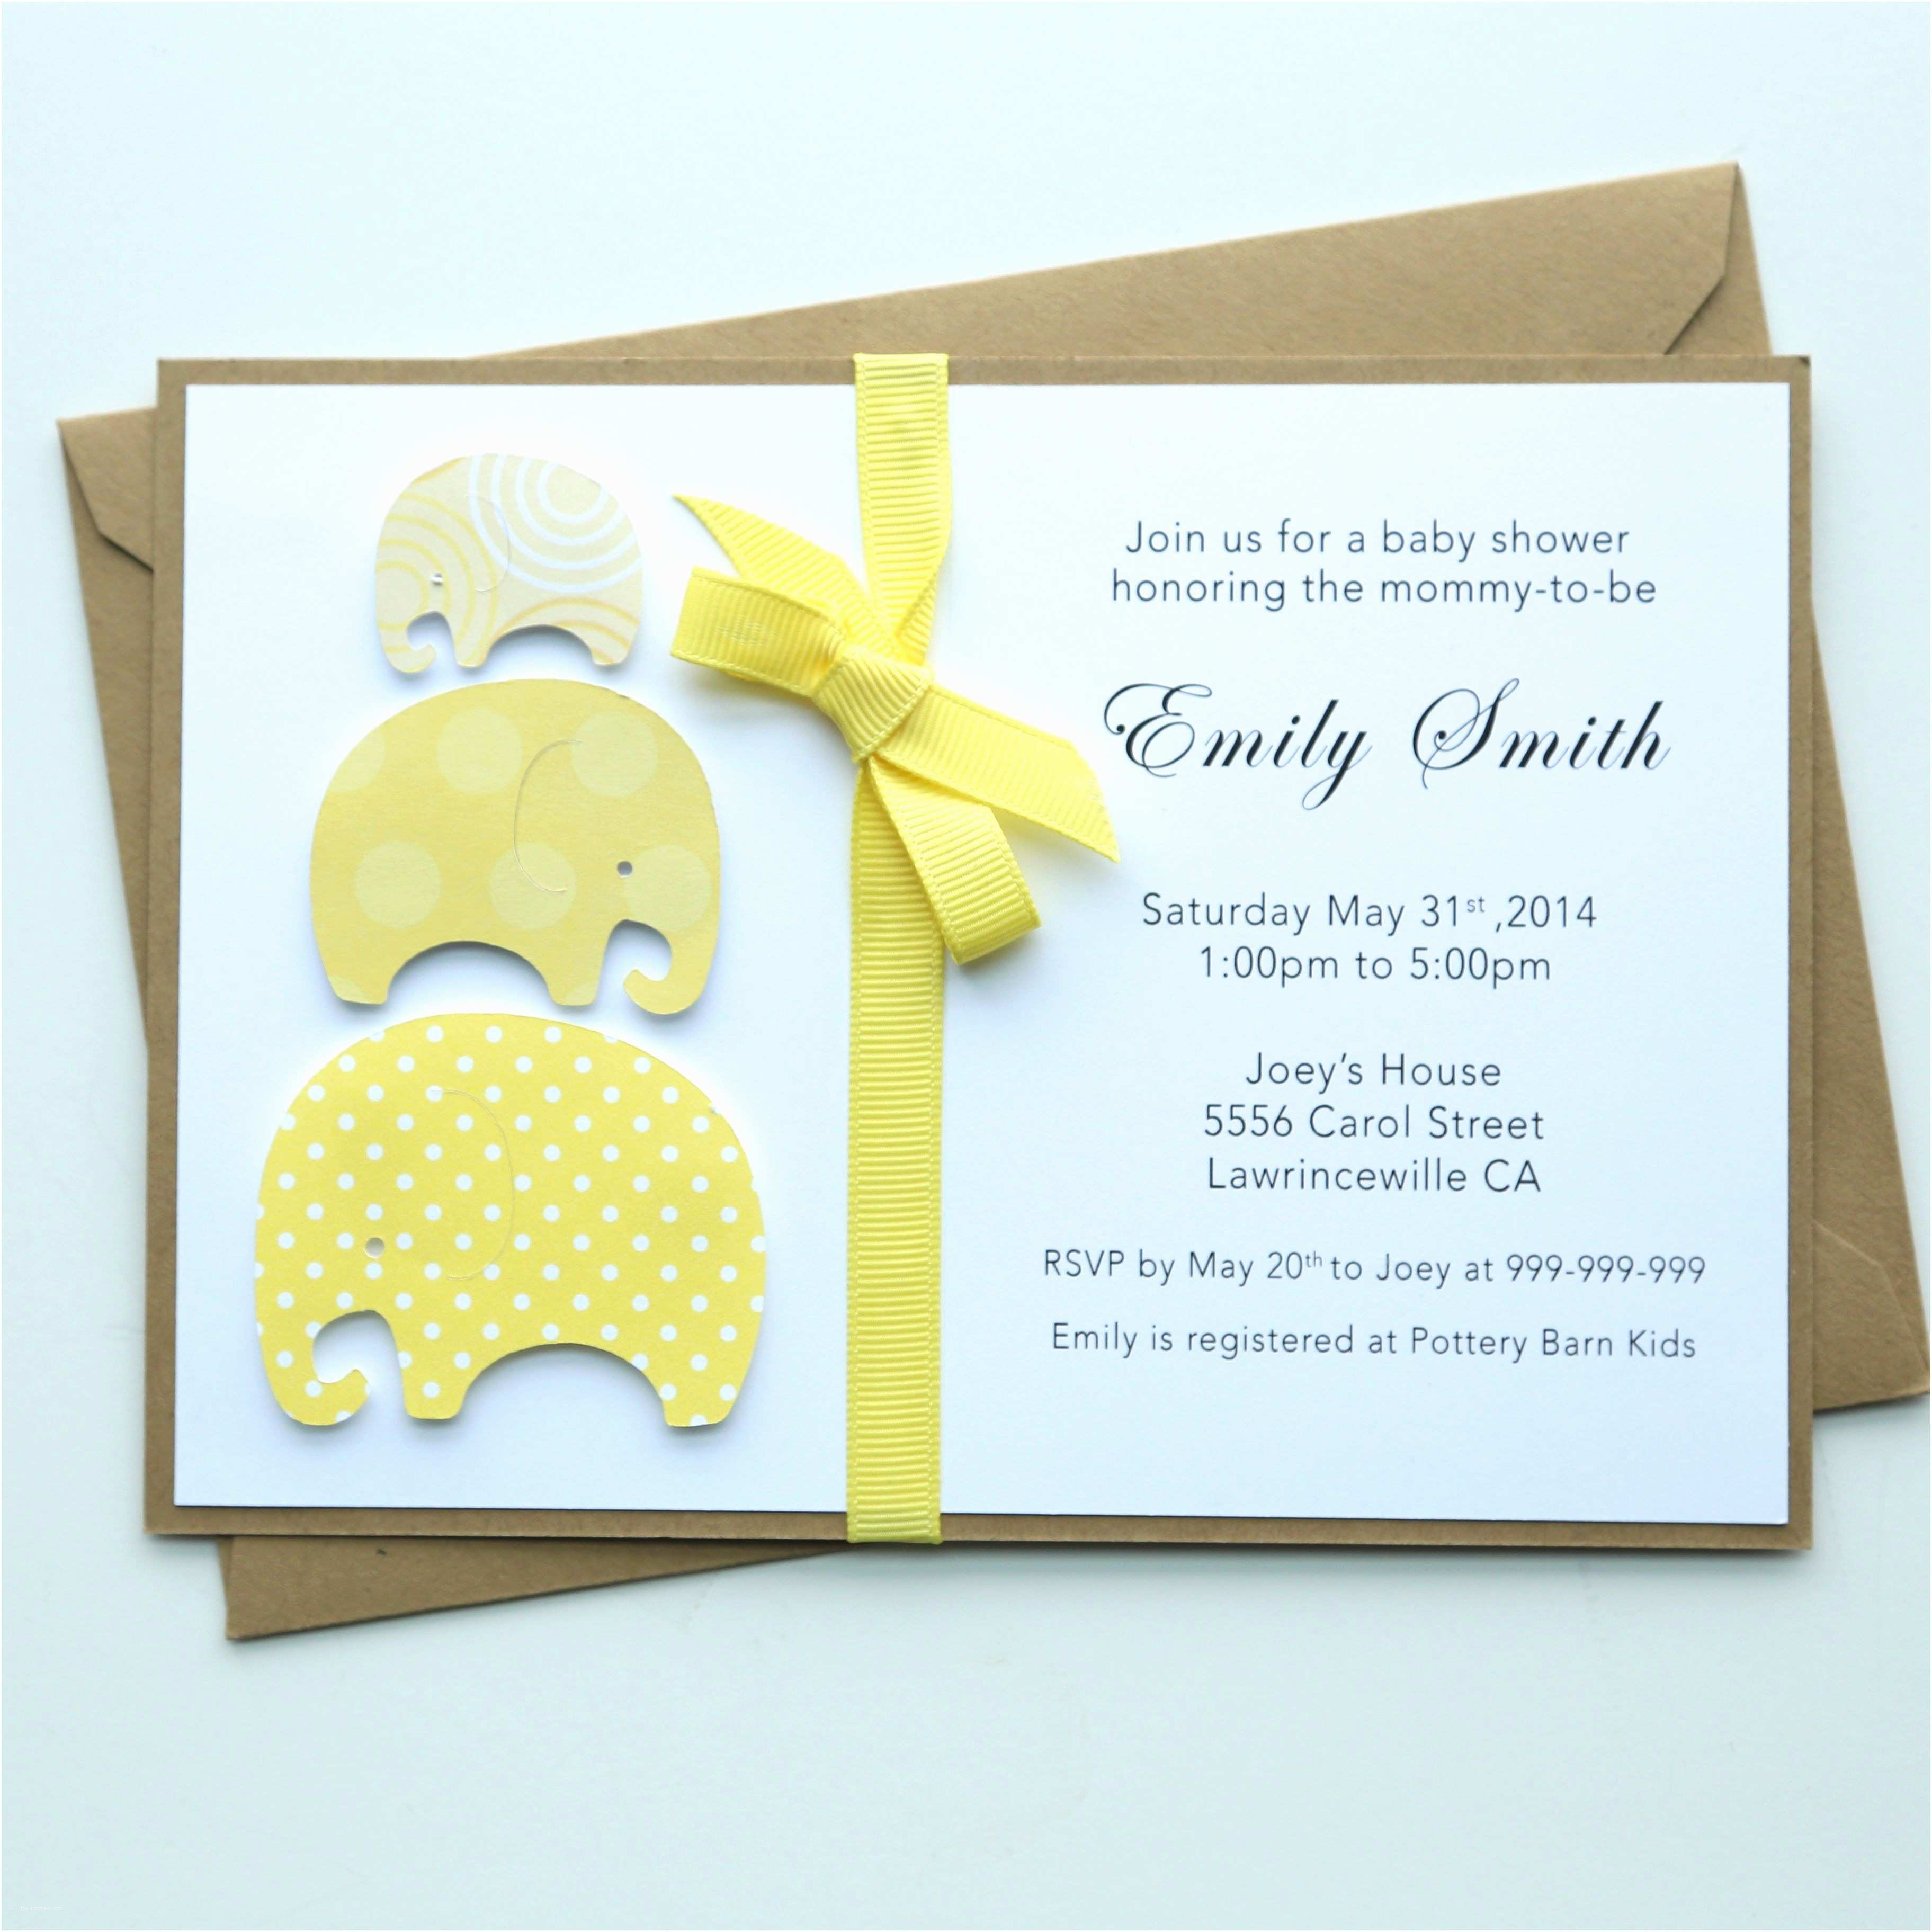 Custom Baby Shower Invitations Handmade Baby Shower Invitation